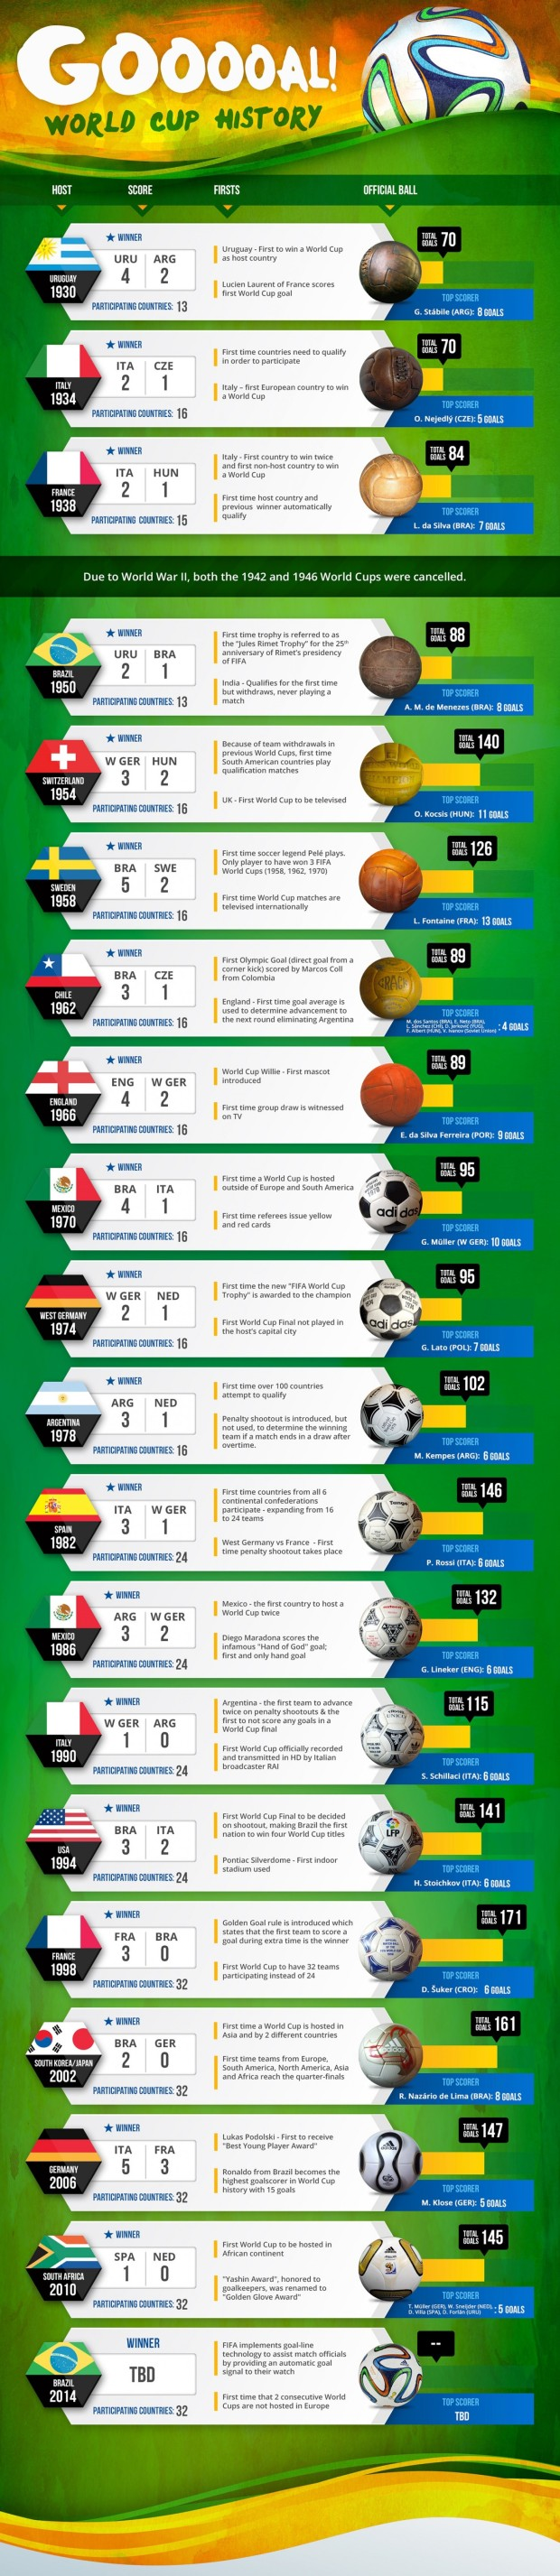 world-cup-history-thumbnail_5392131673eb0_w1500